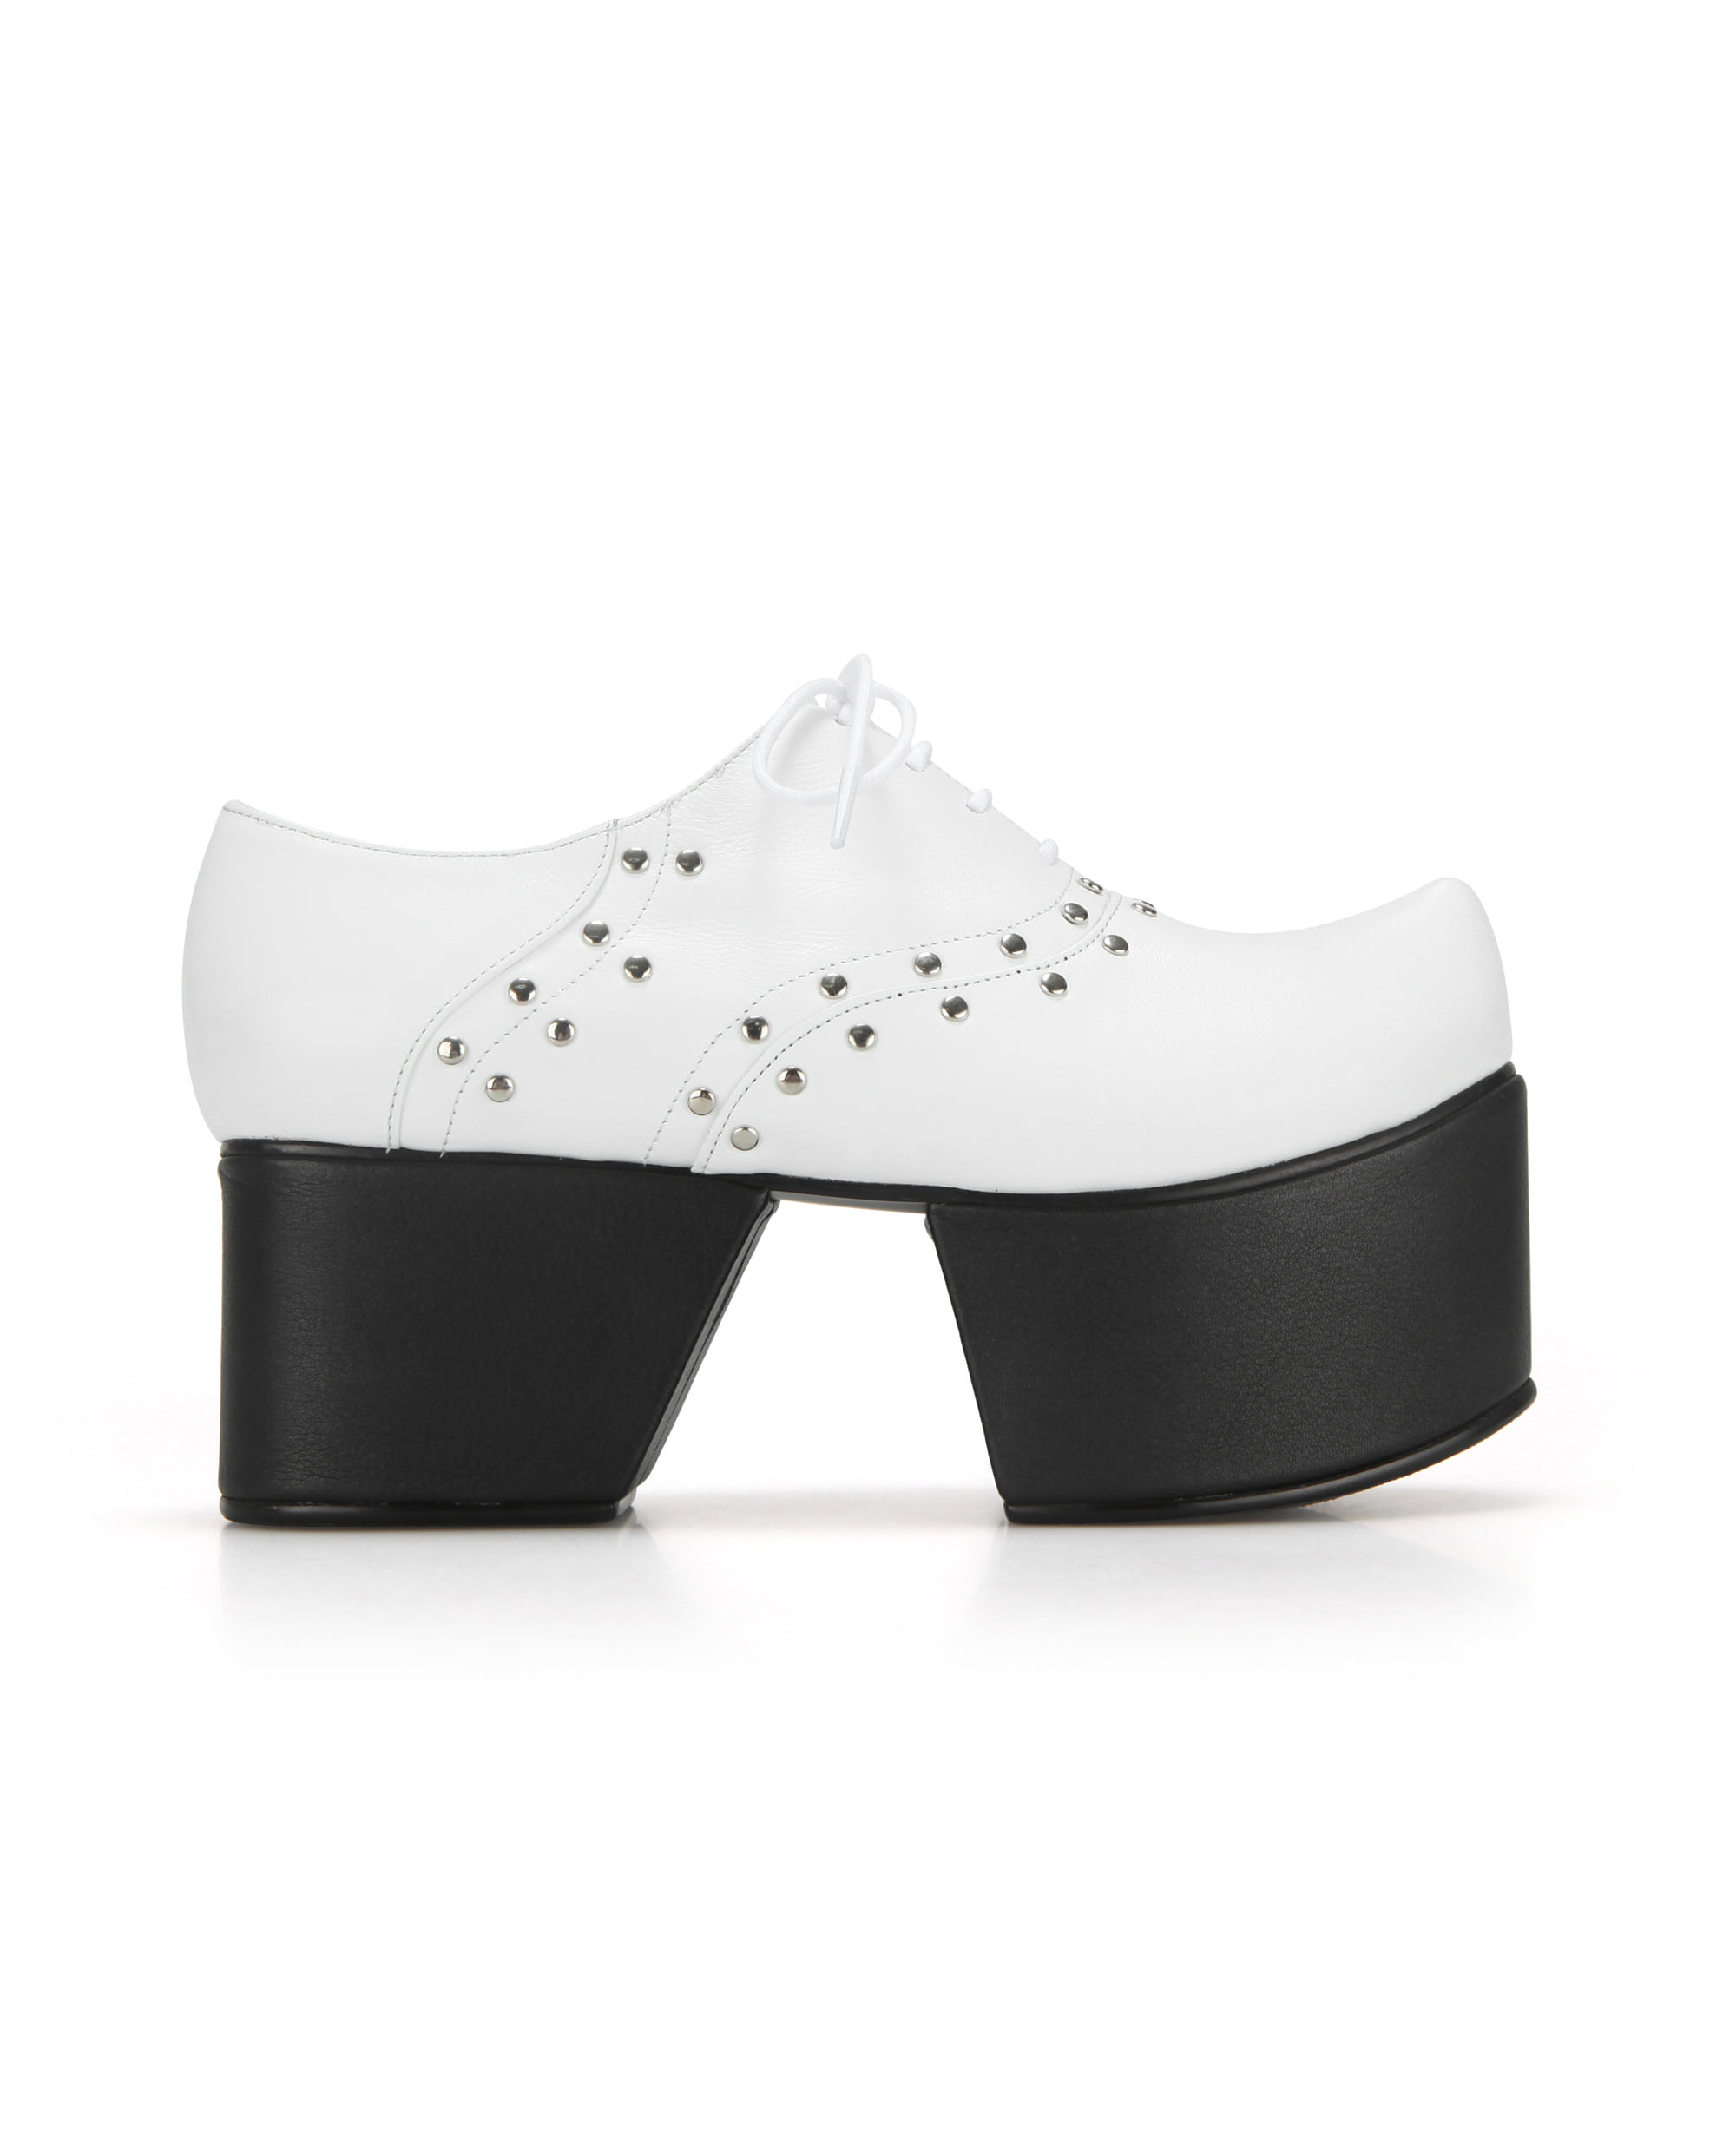 Pointed Toe Derby with Separated Platforms | White/Black